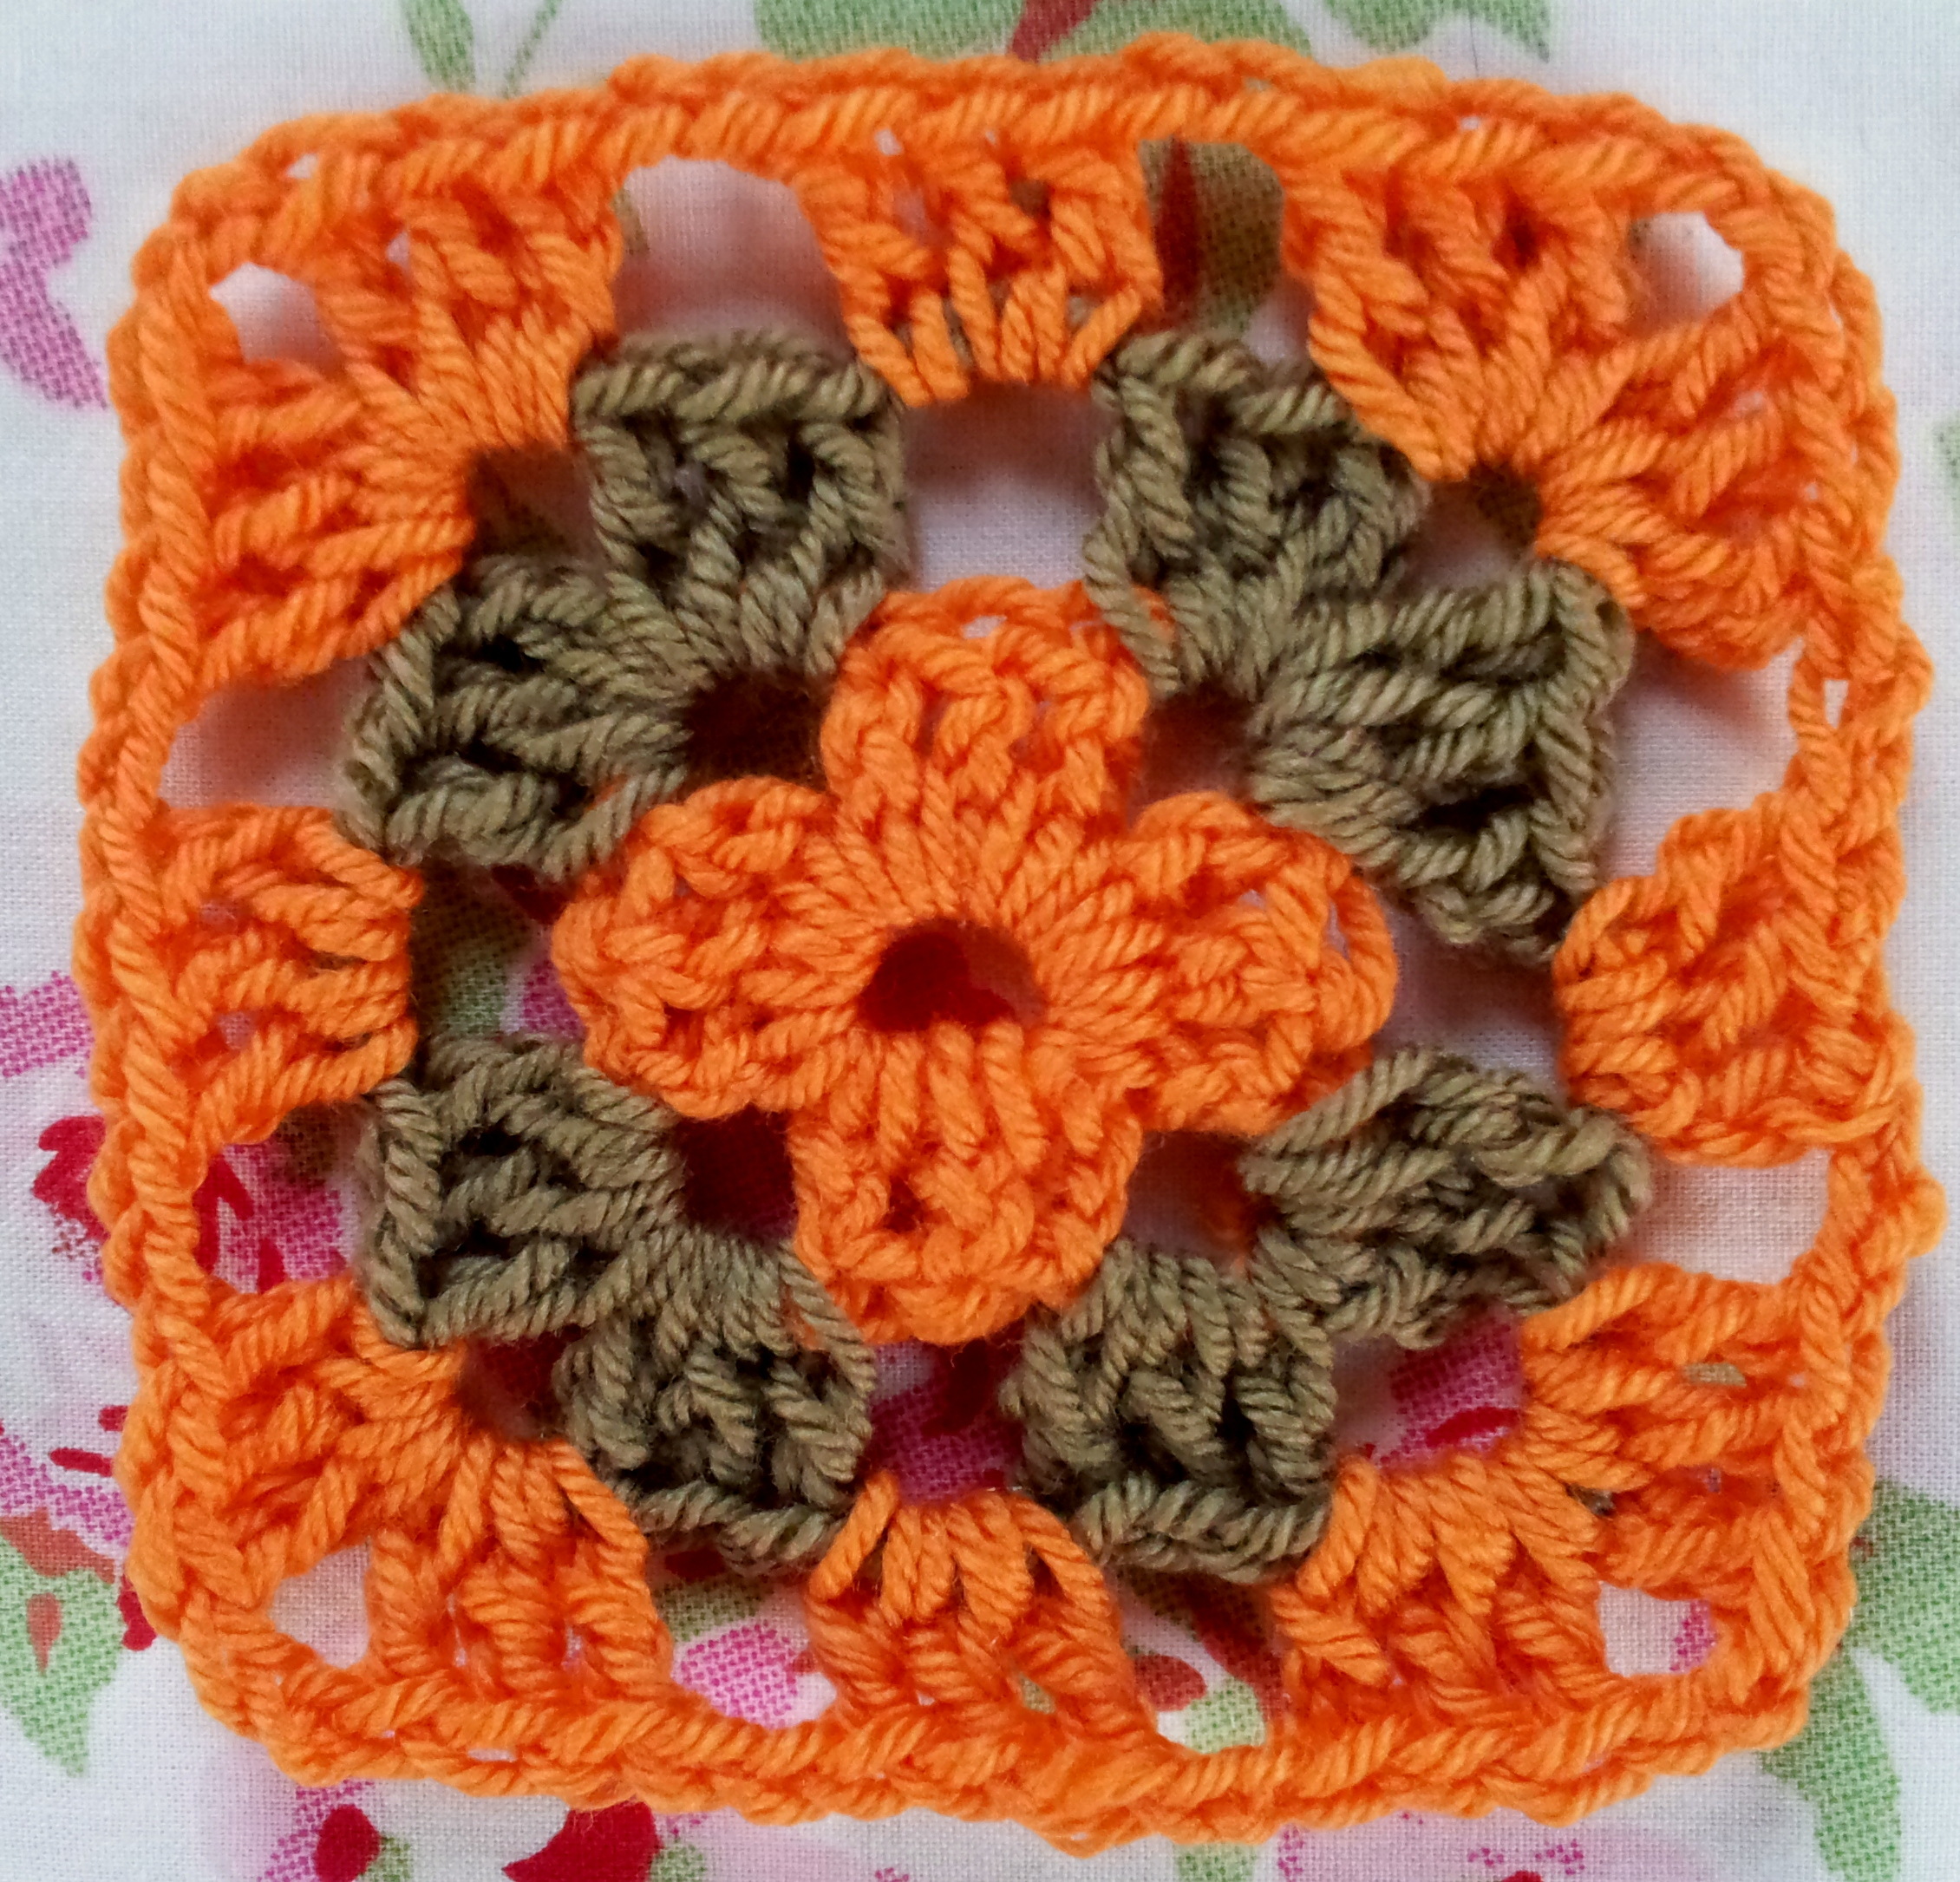 Crochet Stitches Getting Started : ... Granny Square Guide to get you started. Ready? Continue reading